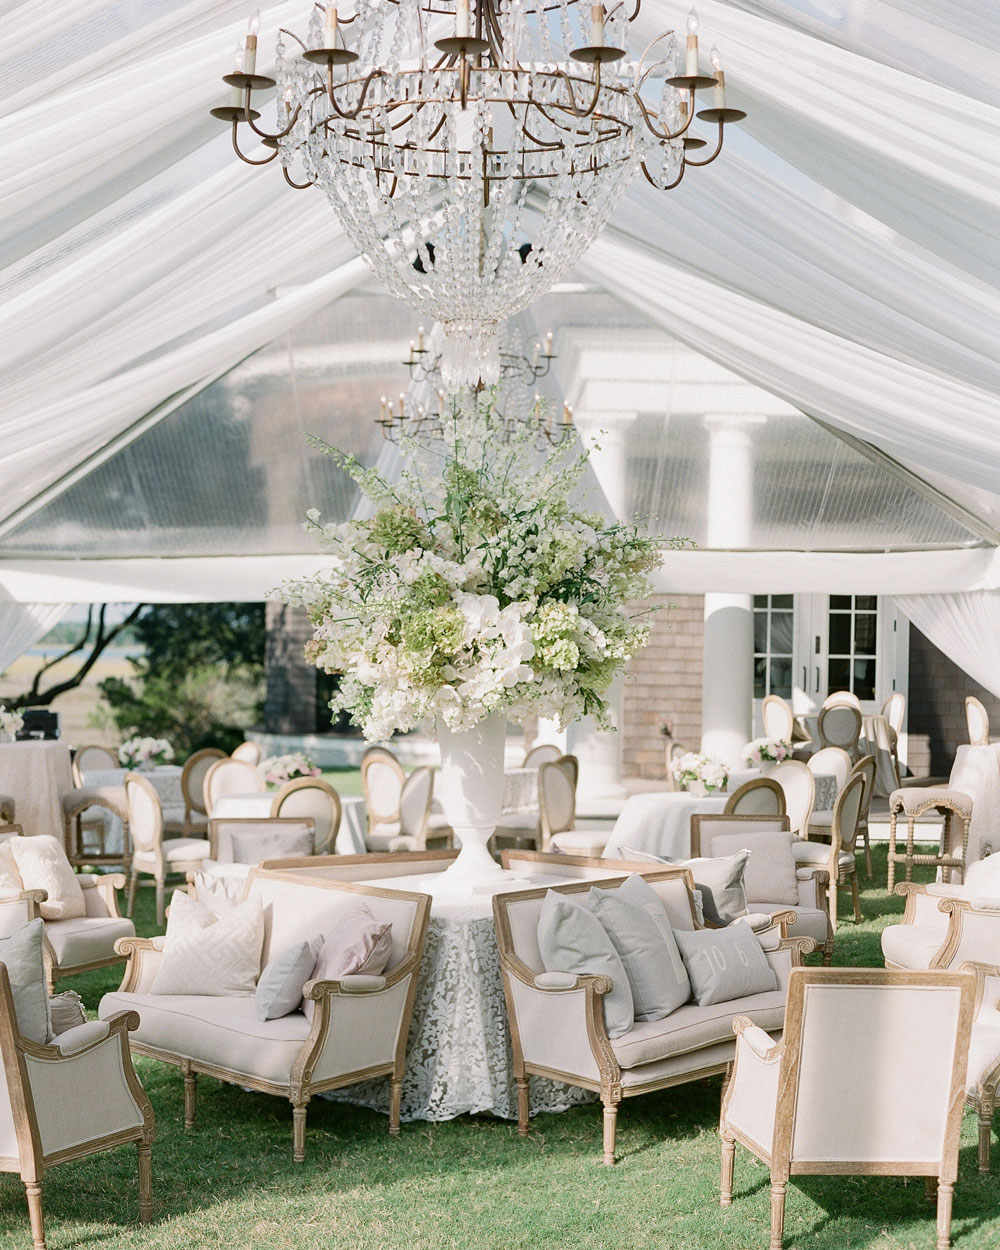 A Charleston Bride is a premier Charleston wedding planner who is known for transforming some of the most gorgeous wedding venues in Charleston SC